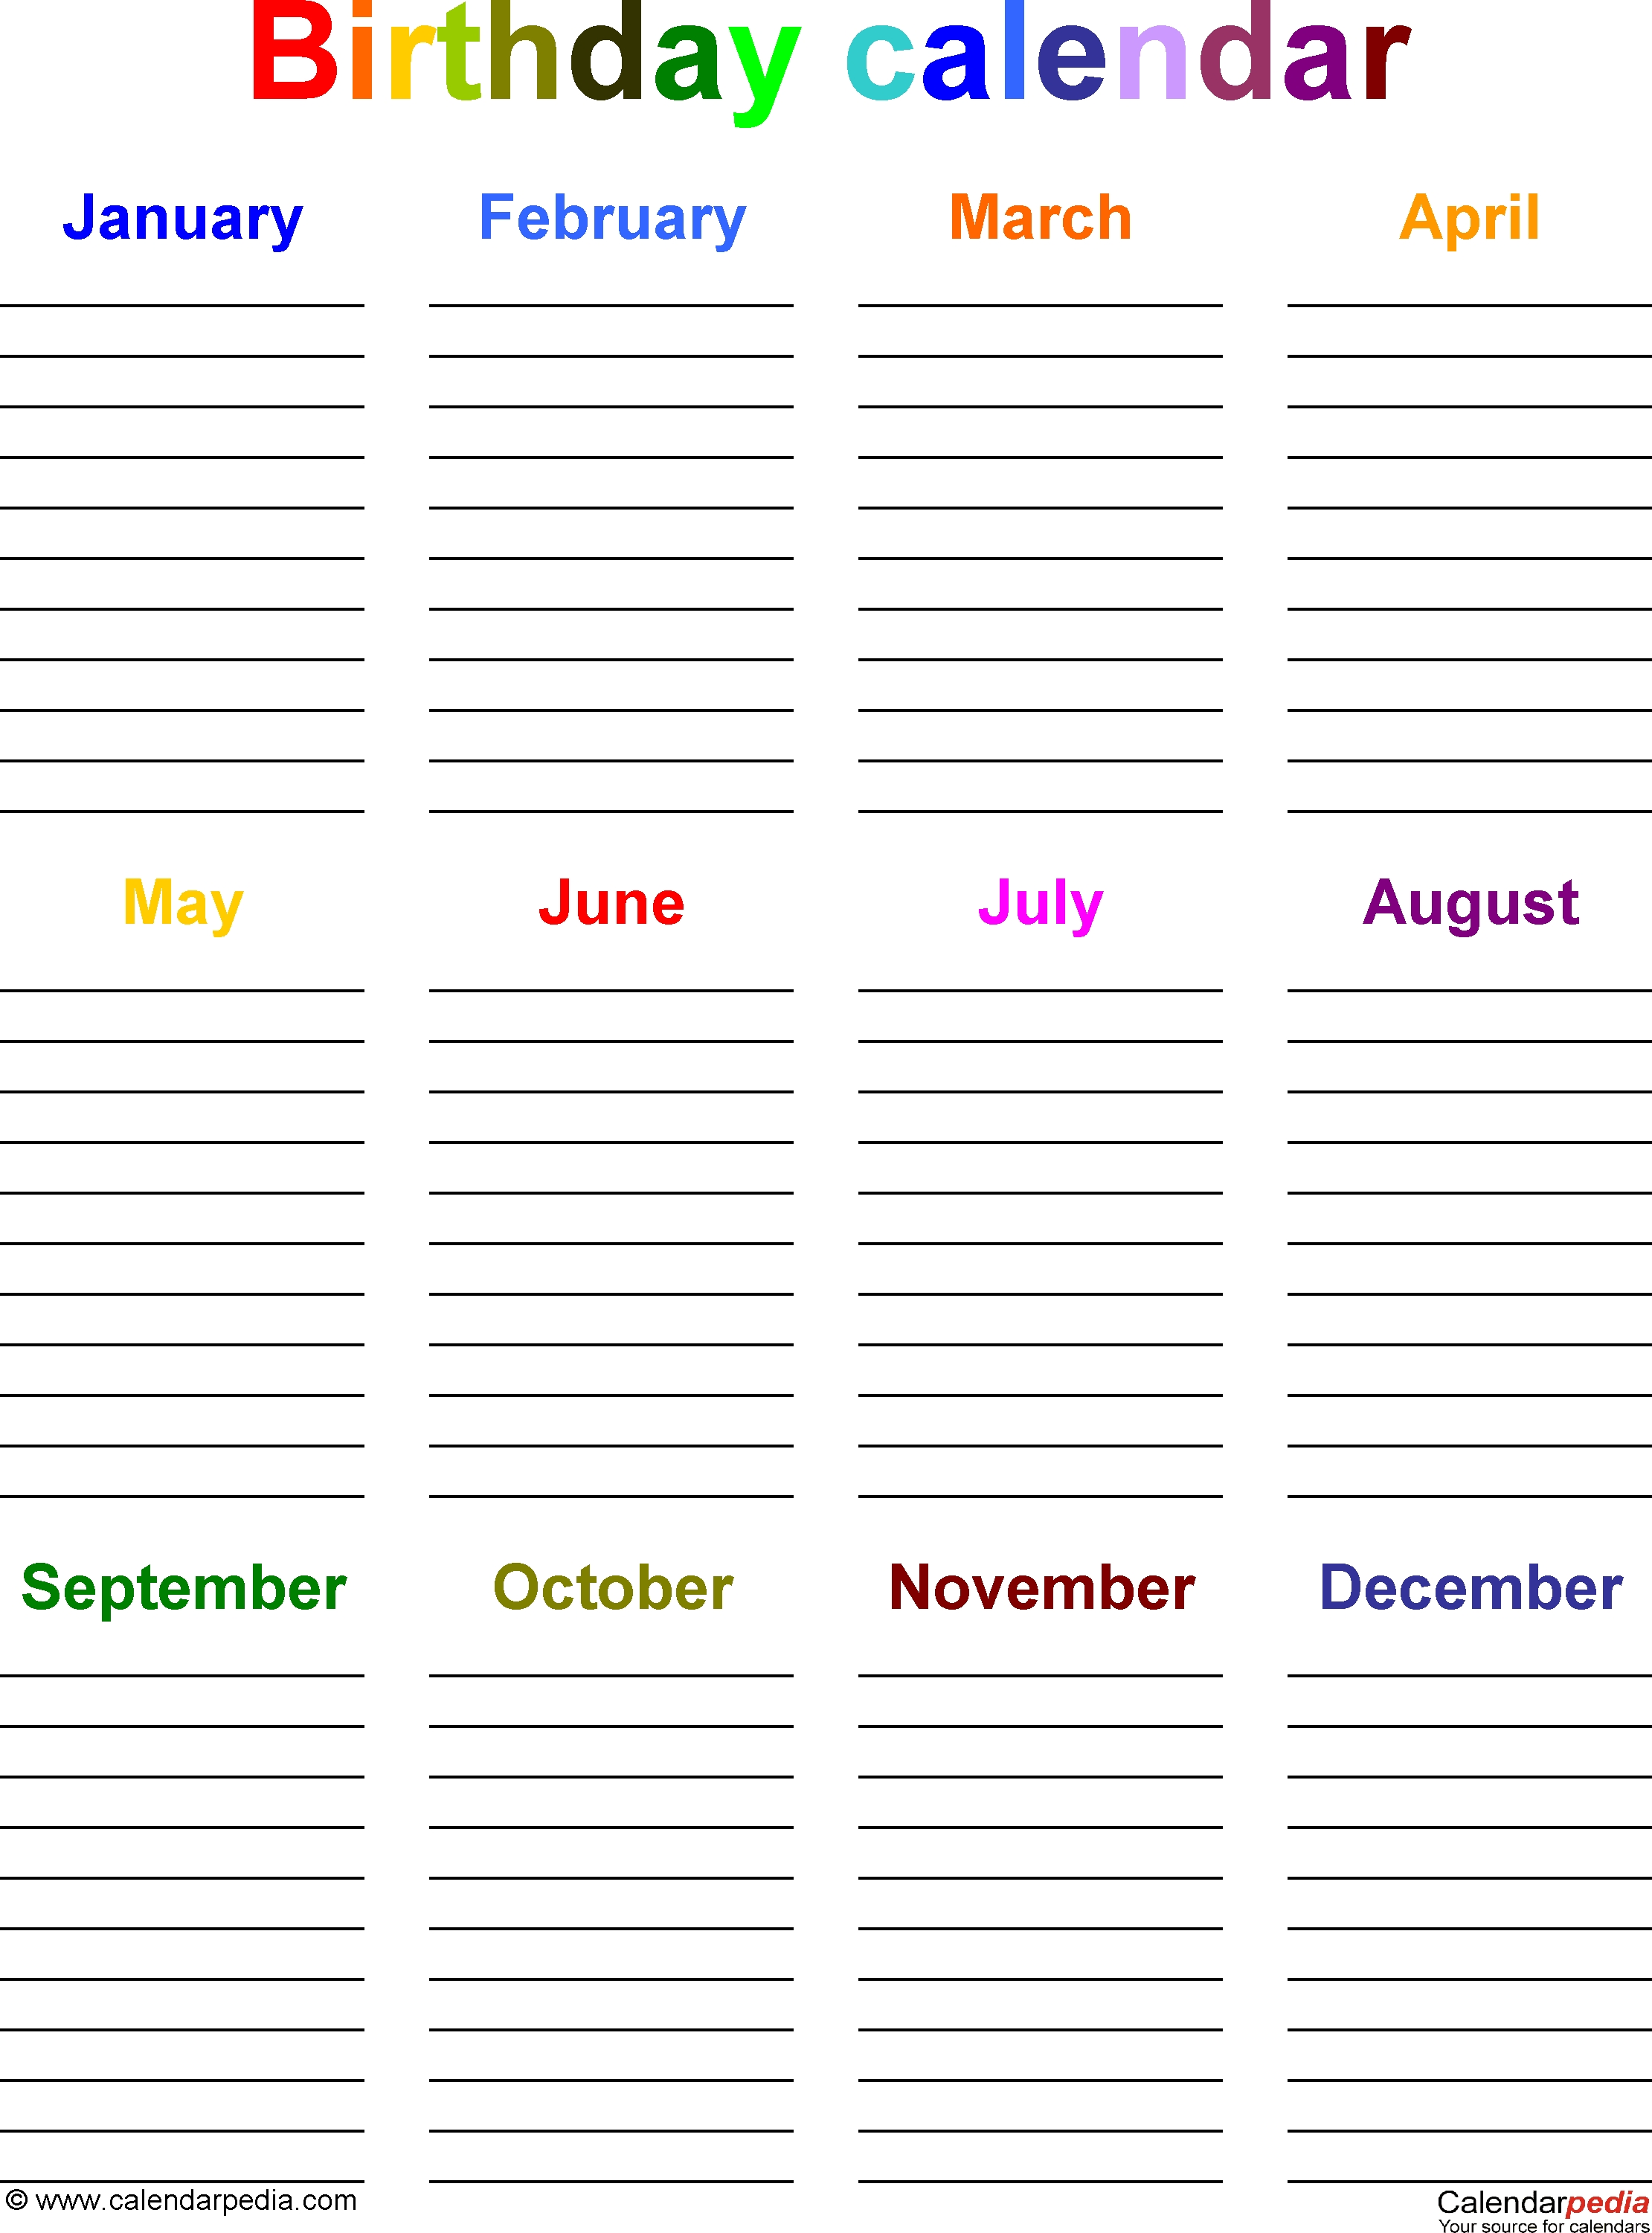 Birthday Calendars - 7 Free Printable Excel Templates with Format For A Birthday/ Anniversary Calendar